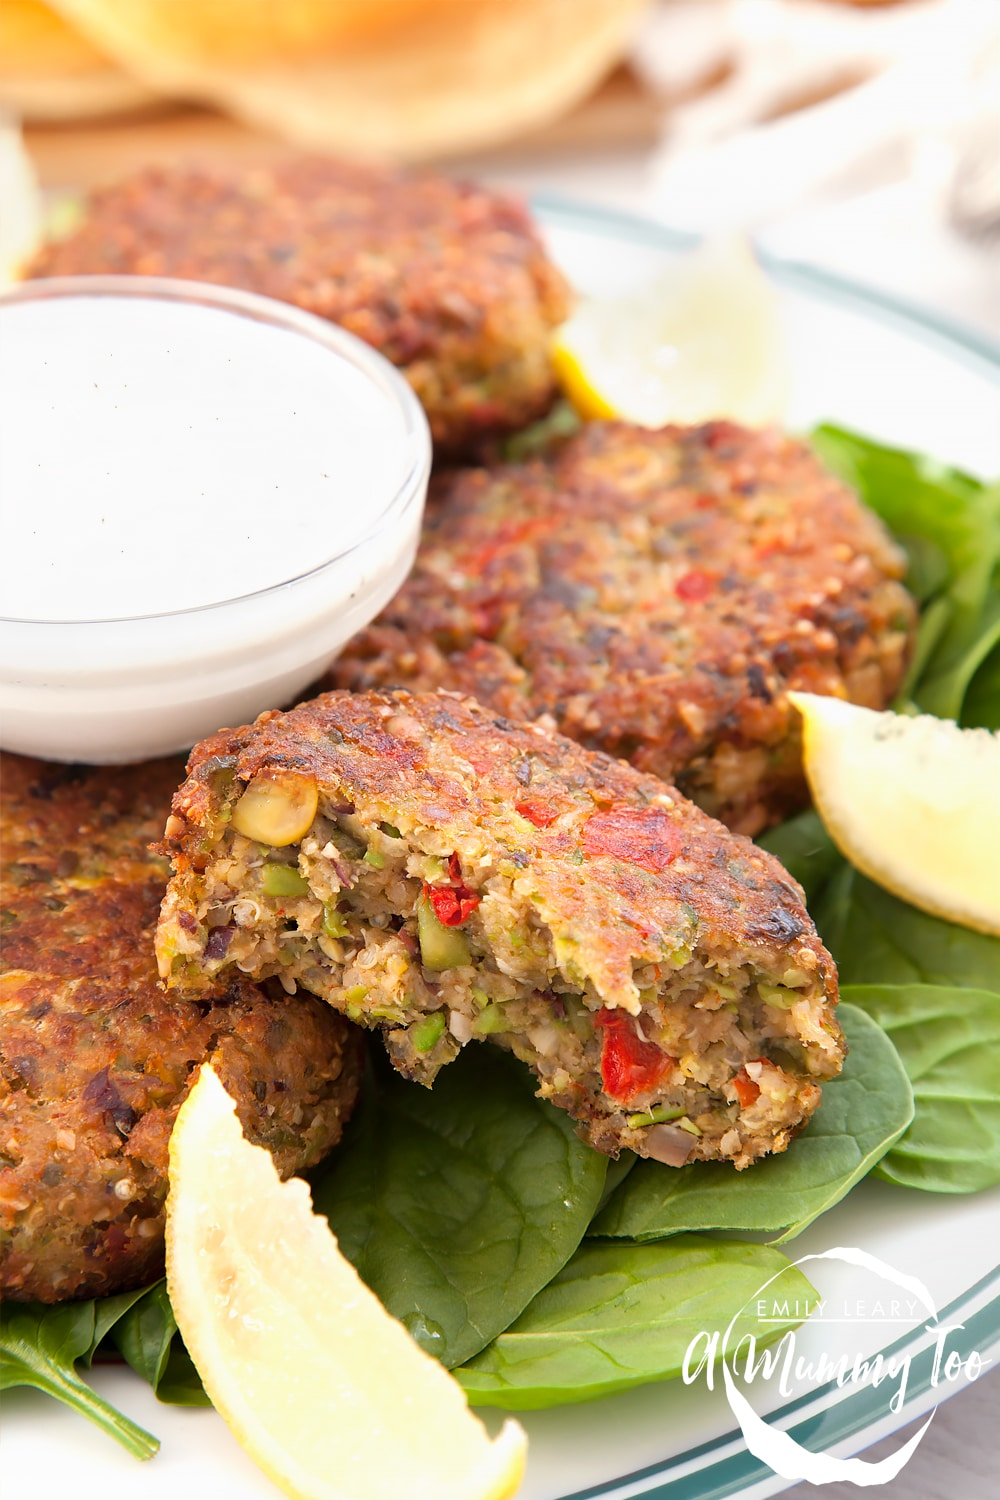 Protein-rich quinoa patties, packed with flavour and ready in minutes. Vegetarian, easy to make and delicious.